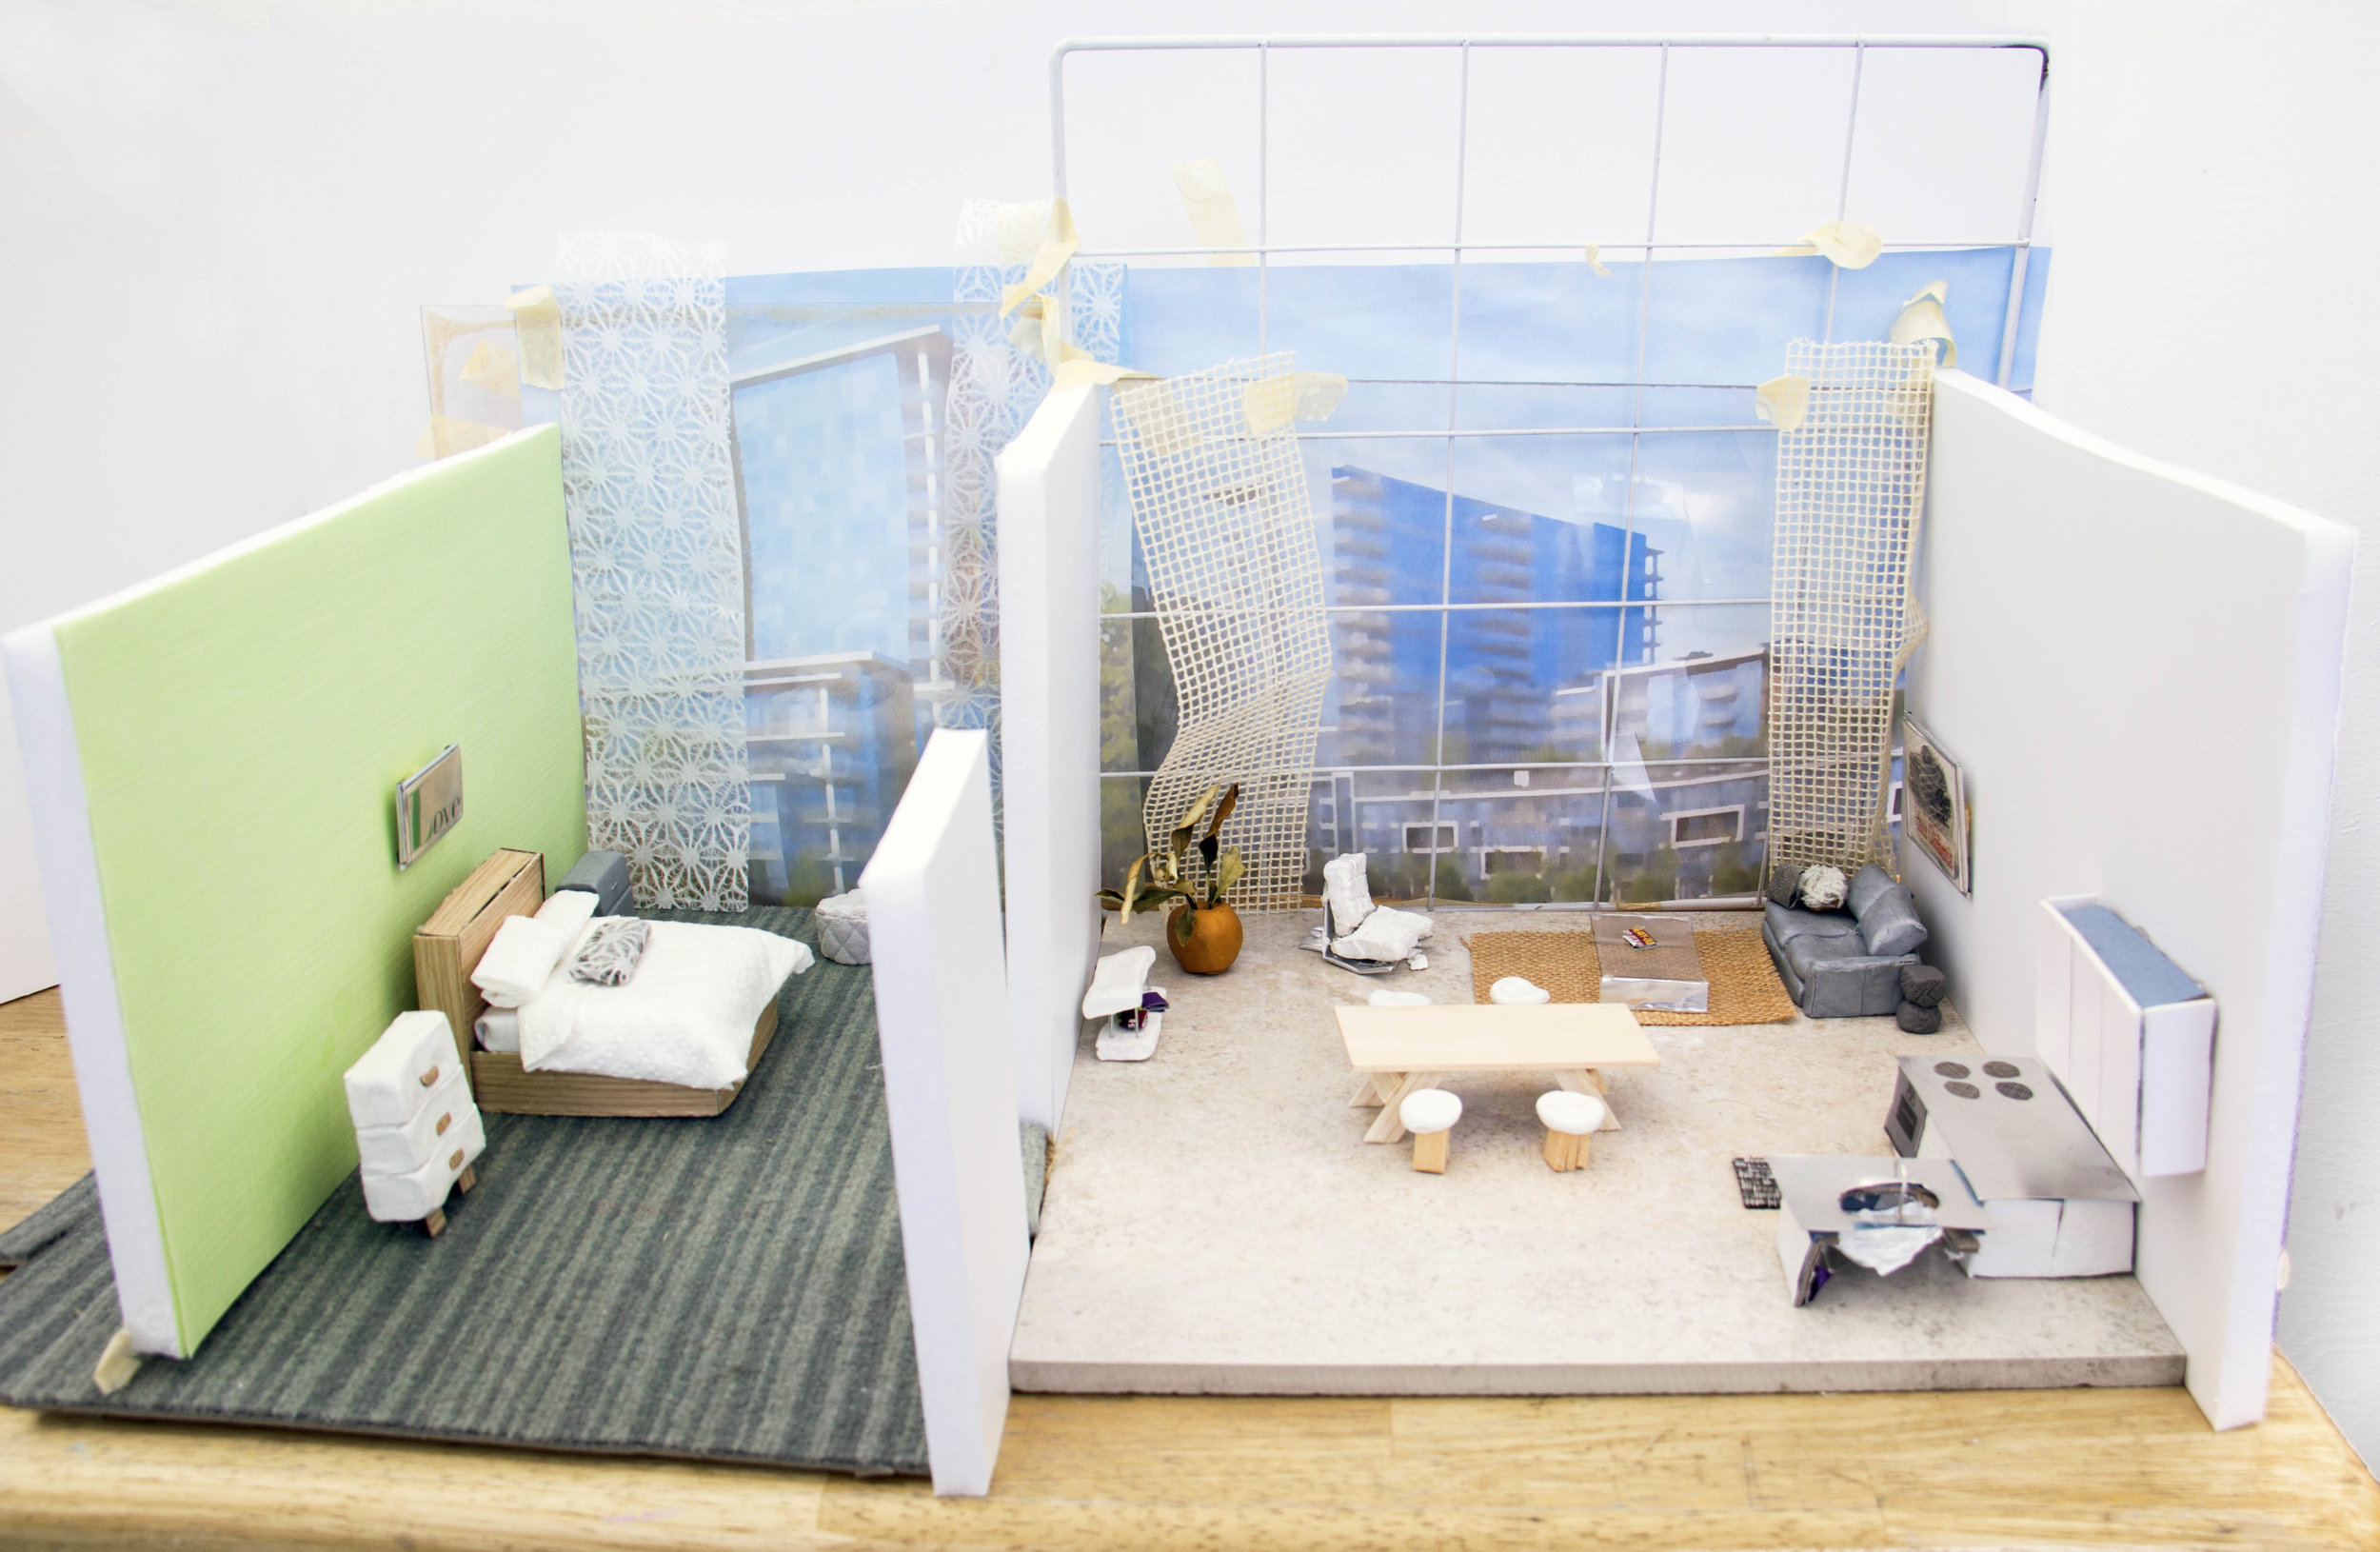 The Ultimate Private Room of Luxury      / Nature Is Your Neighbor Proximity Is Your Reward    Miniature model, 2017